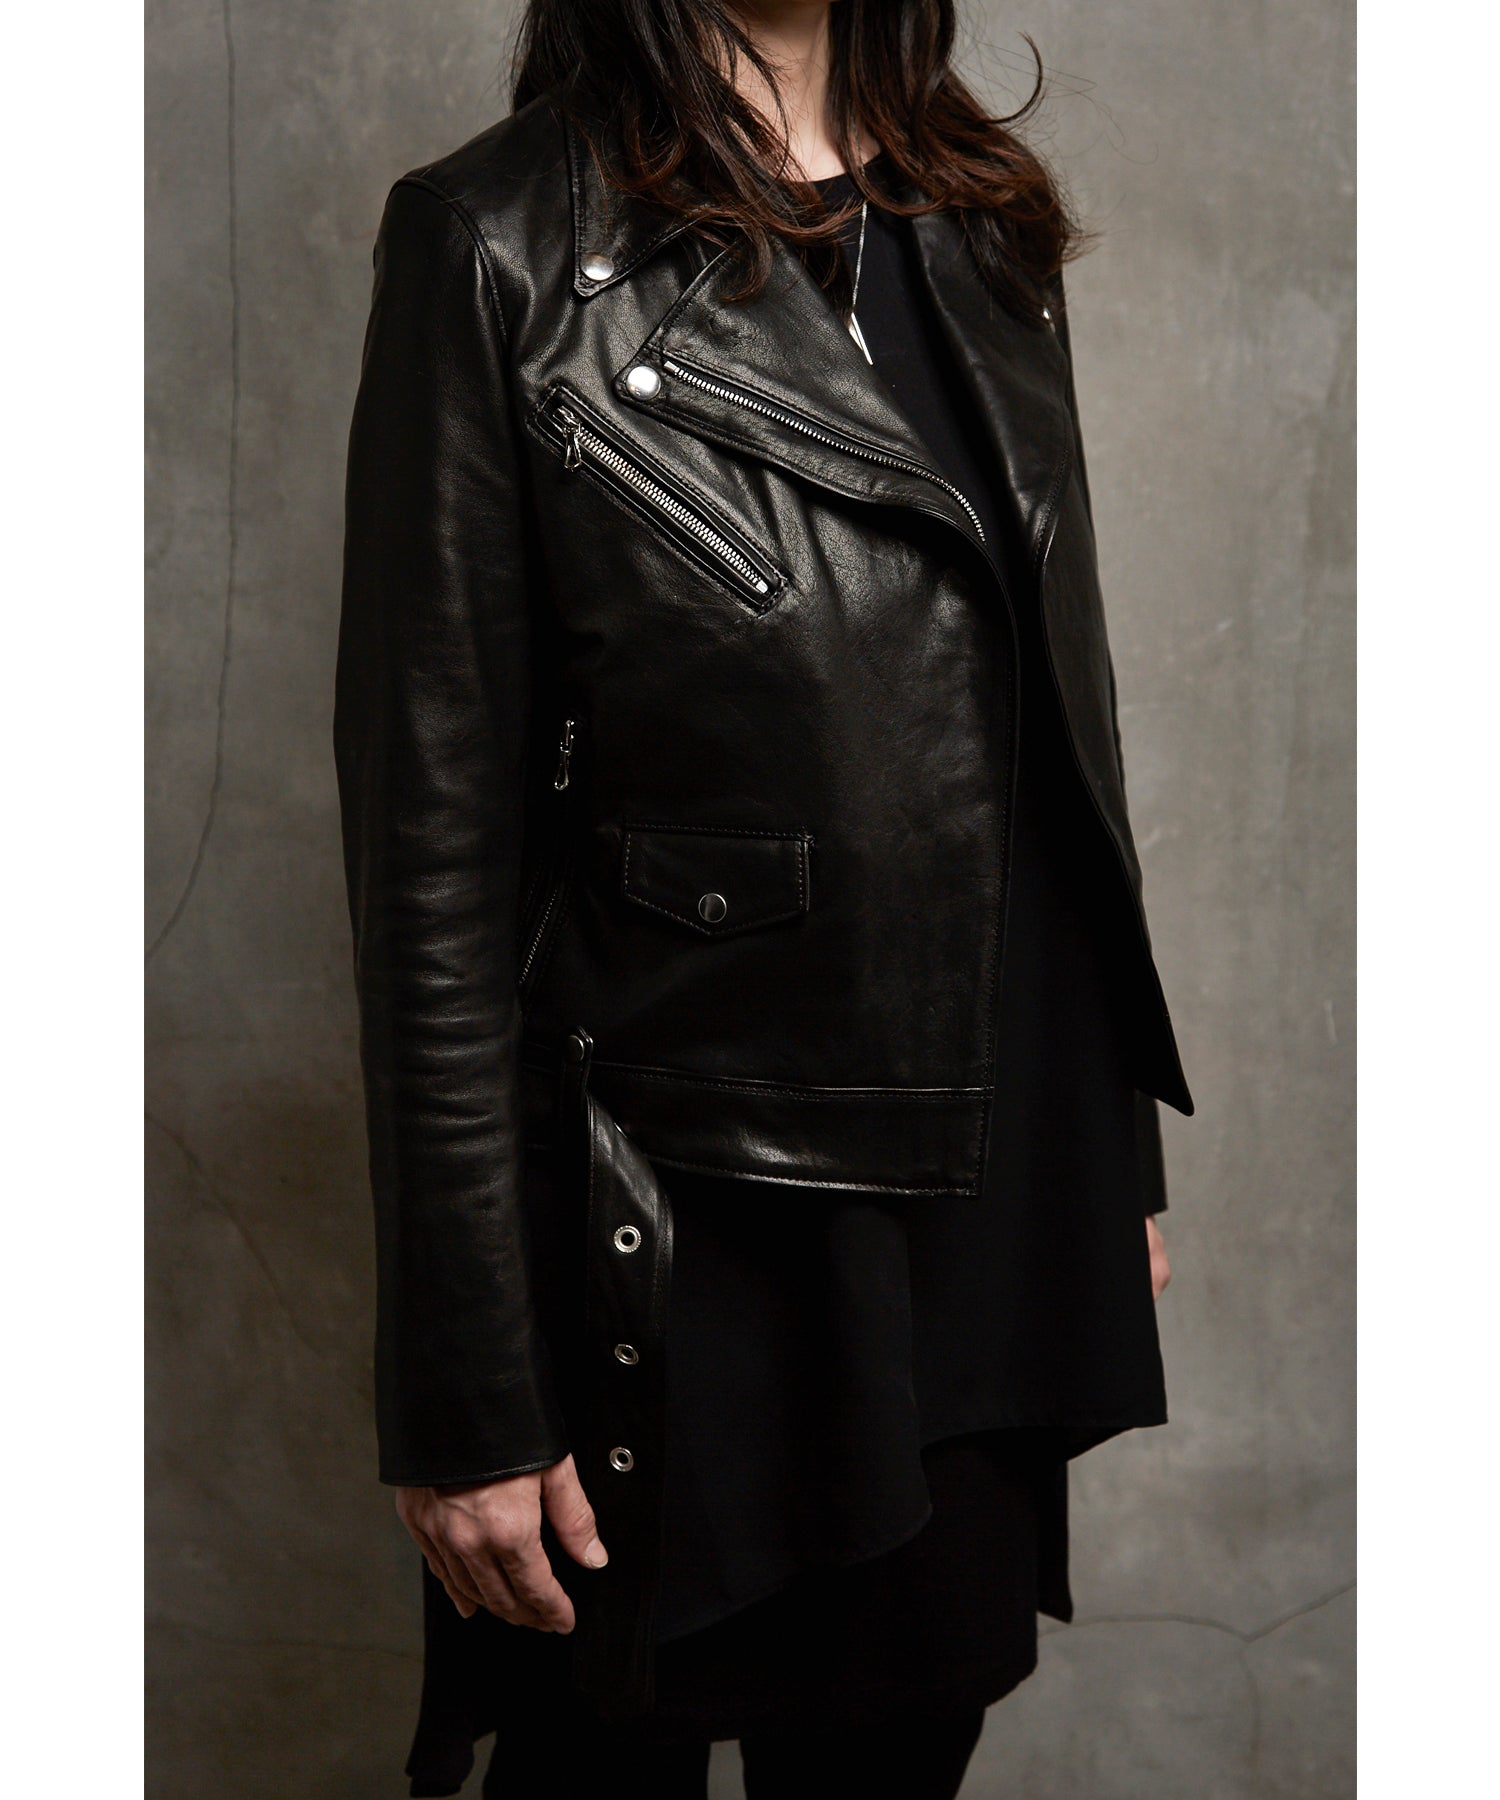 Load image into Gallery viewer, Lucinda Spain Entrefino Lamb Double Riders Jacket / Black